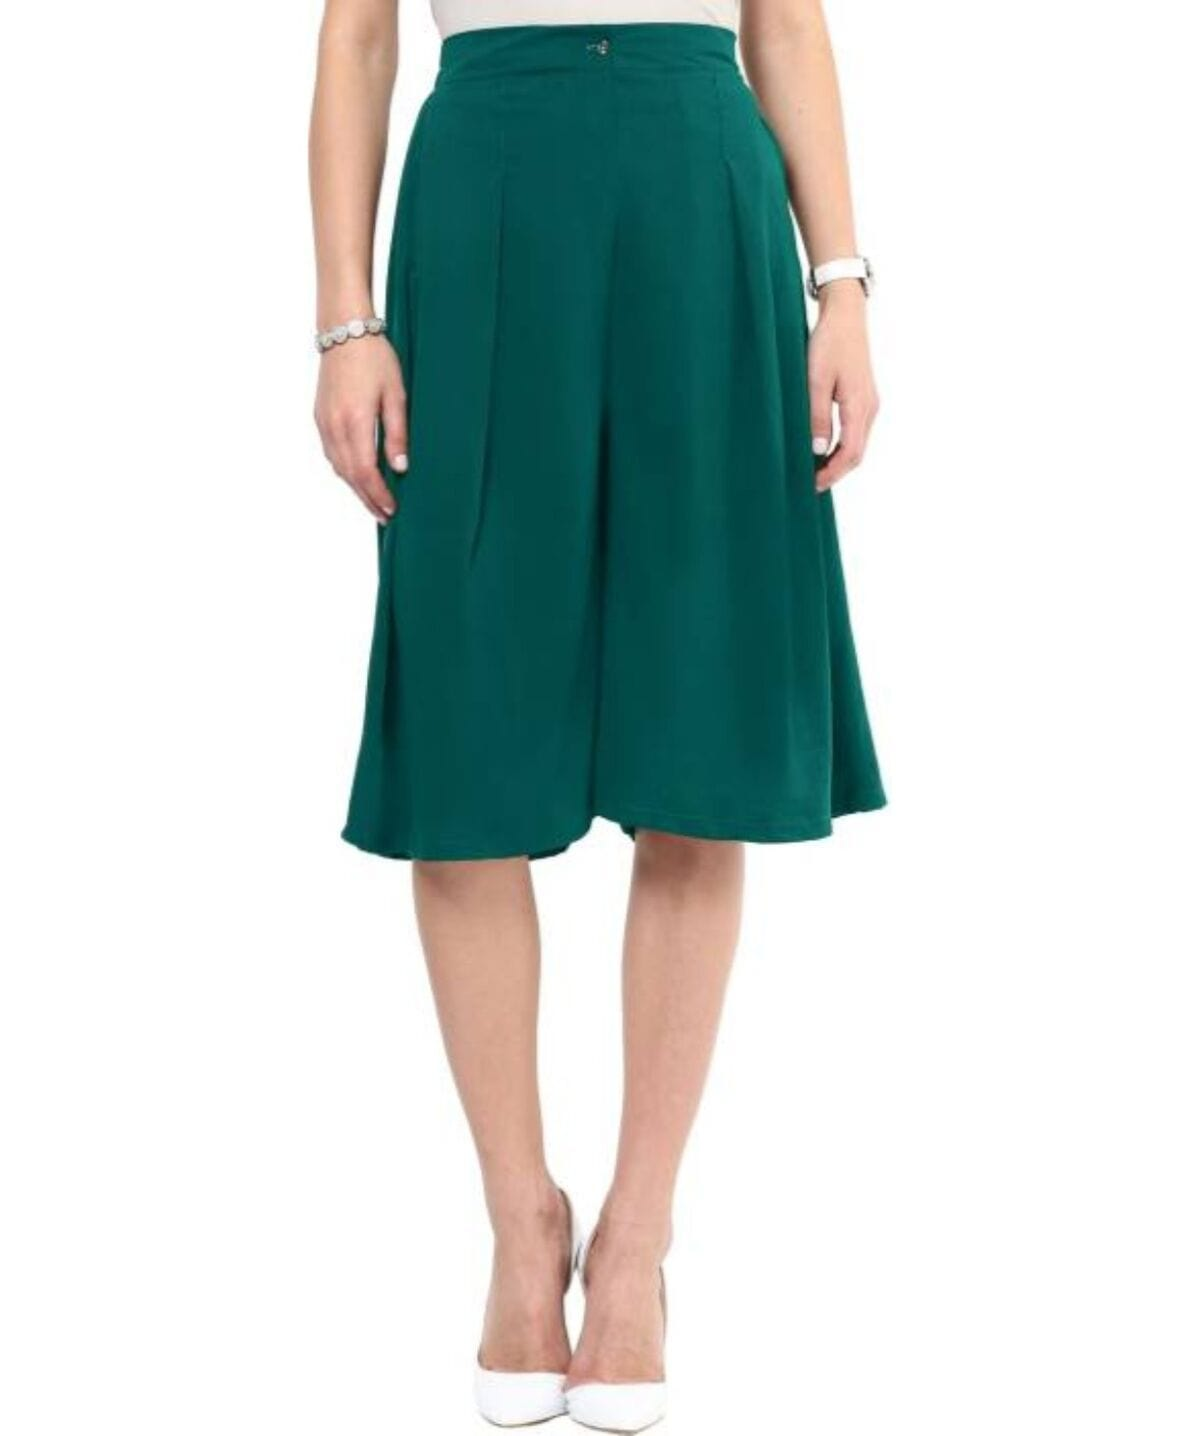 Green Knee Length Adjustable Culottes - Uptownie